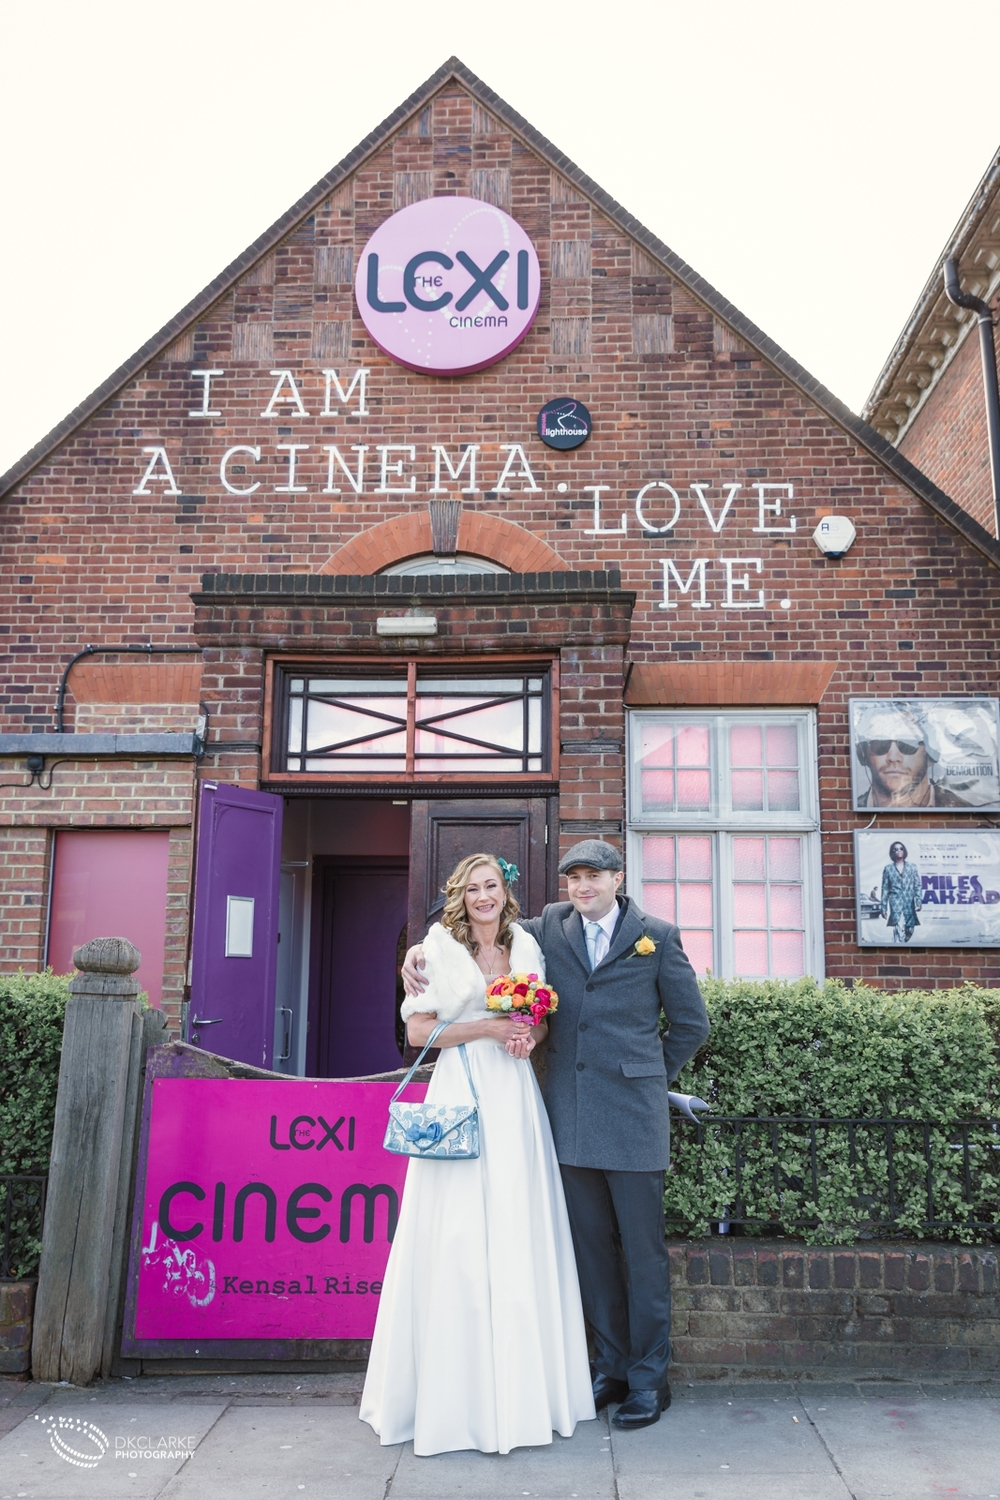 Wedding photography at a London cinema